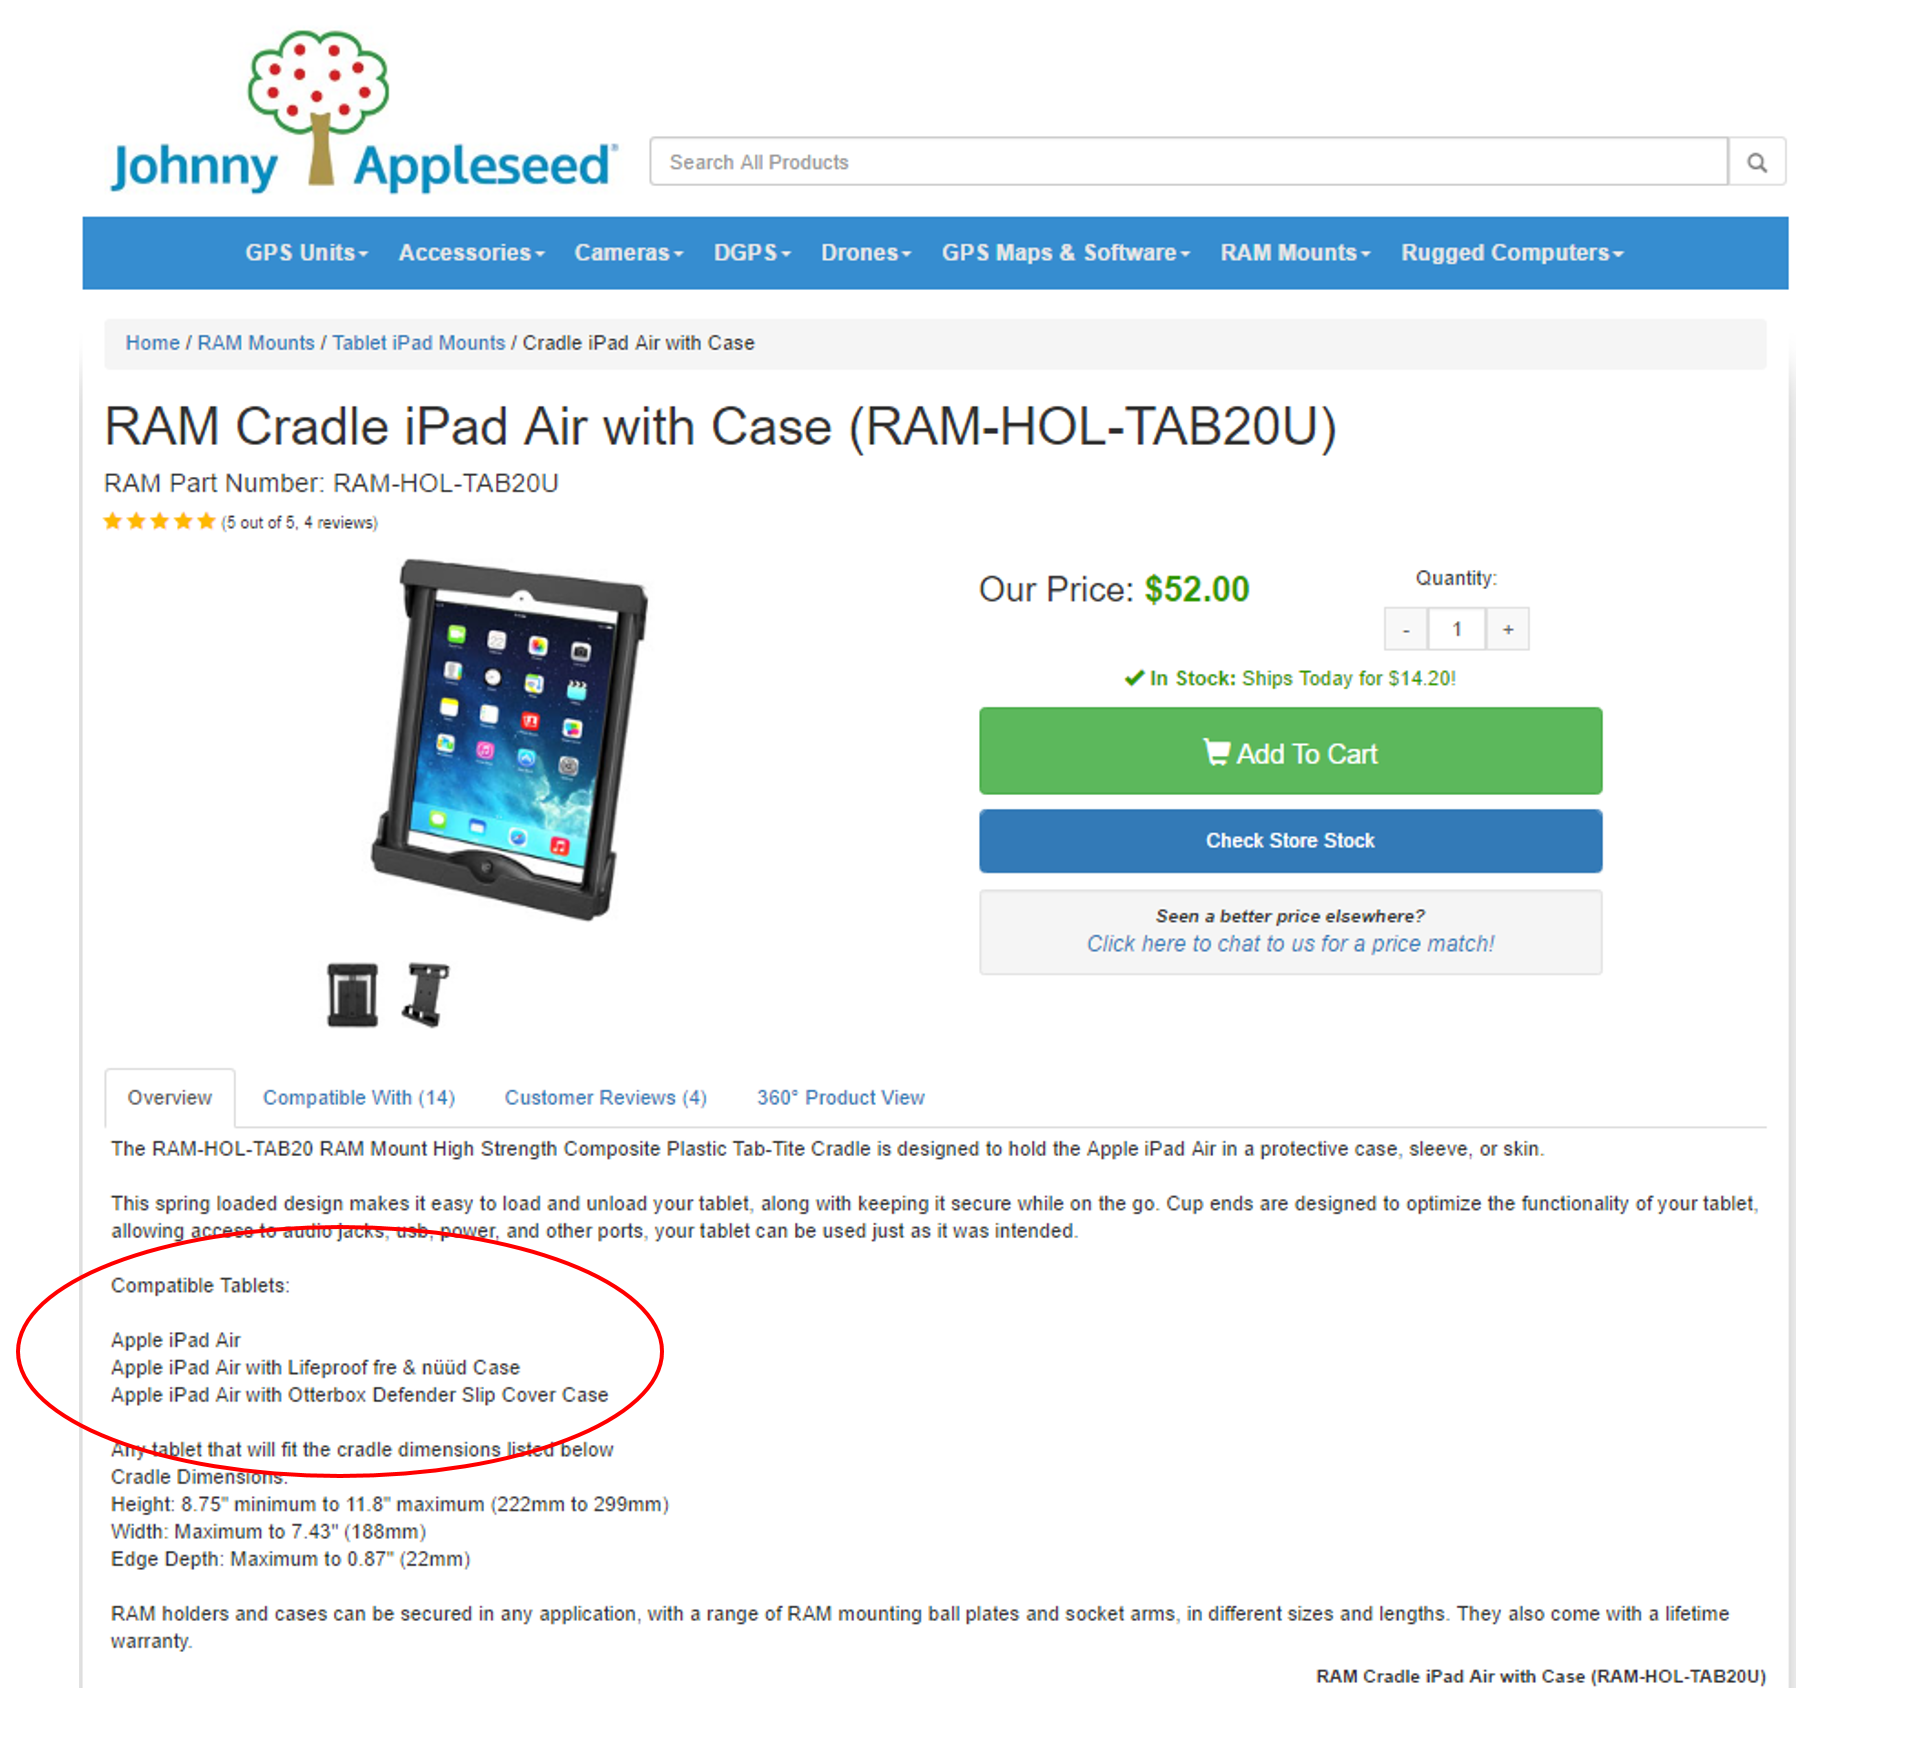 RAM Cradle Ipad Air